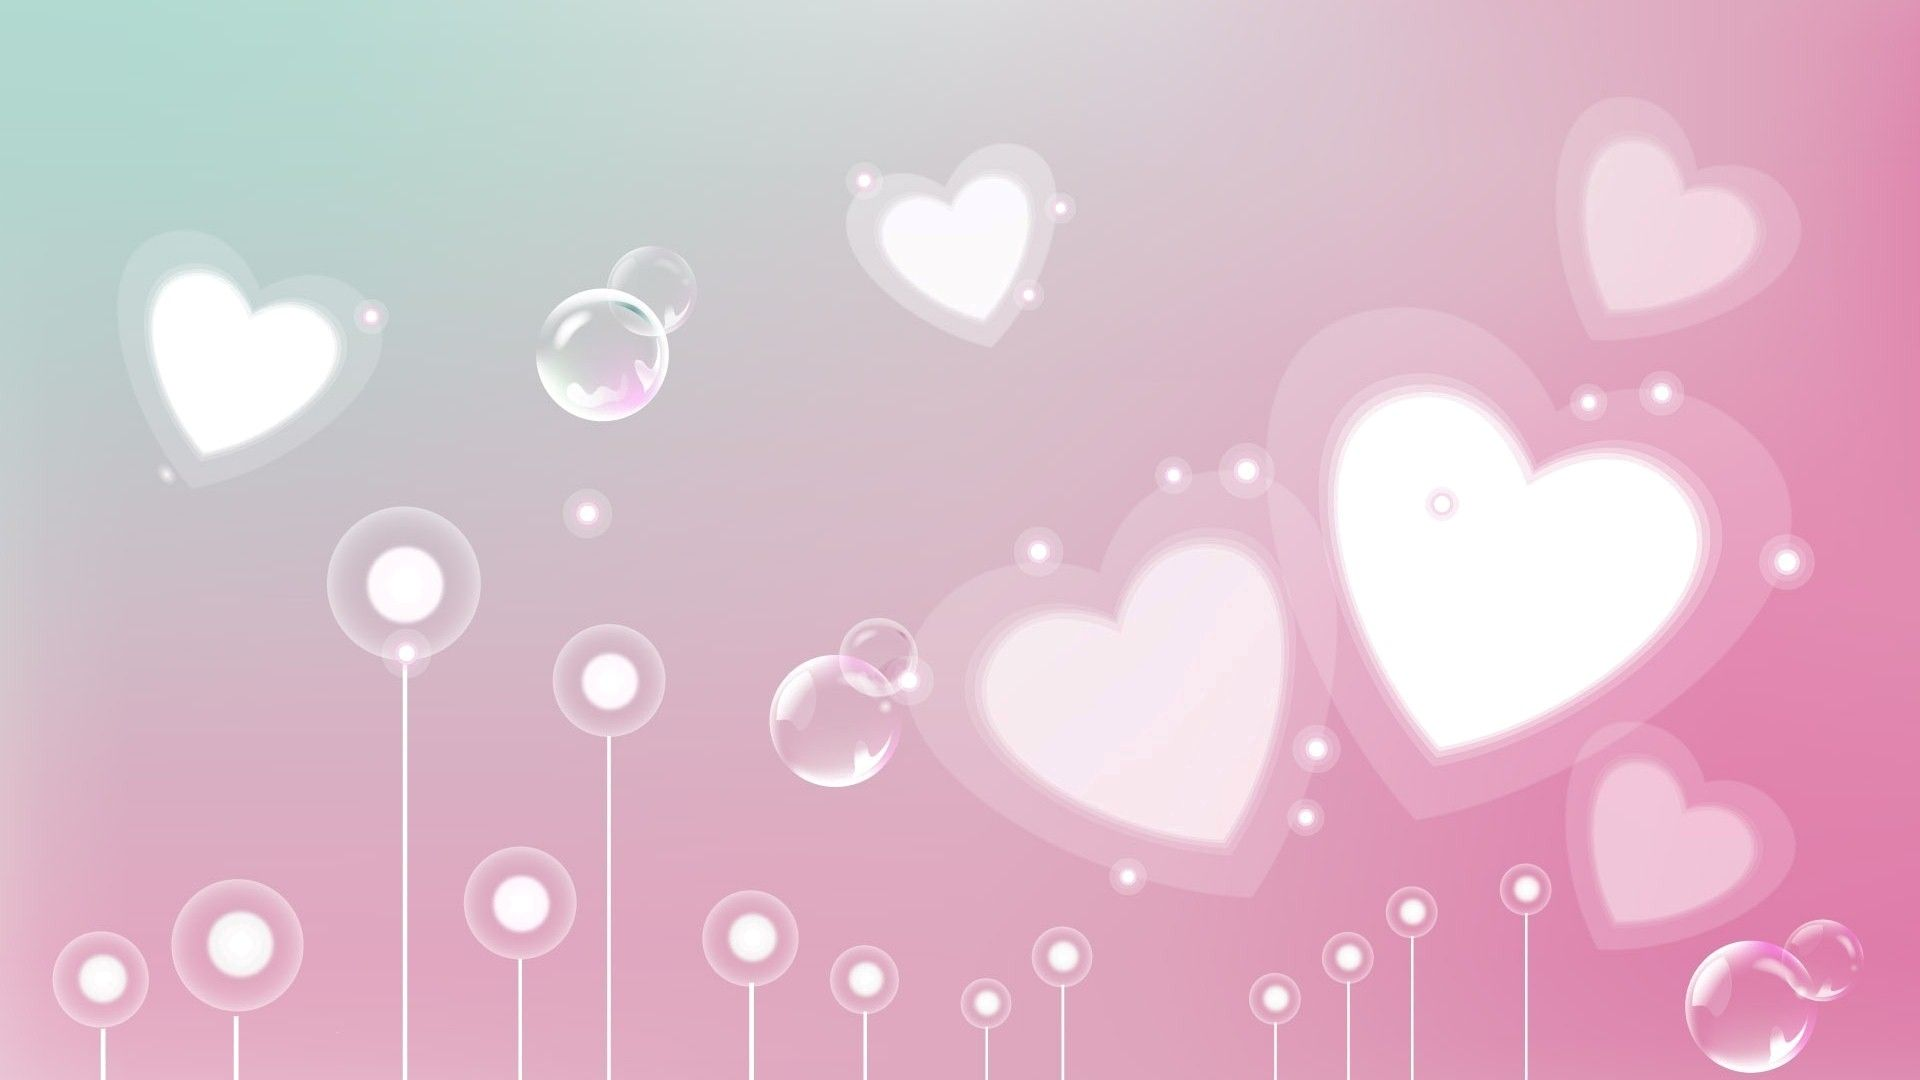 Love Images Hd Wallpapers 3504 Beautiful Pink Heart Background Pink Heart Background Heart Wallpaper Valentines Wallpaper